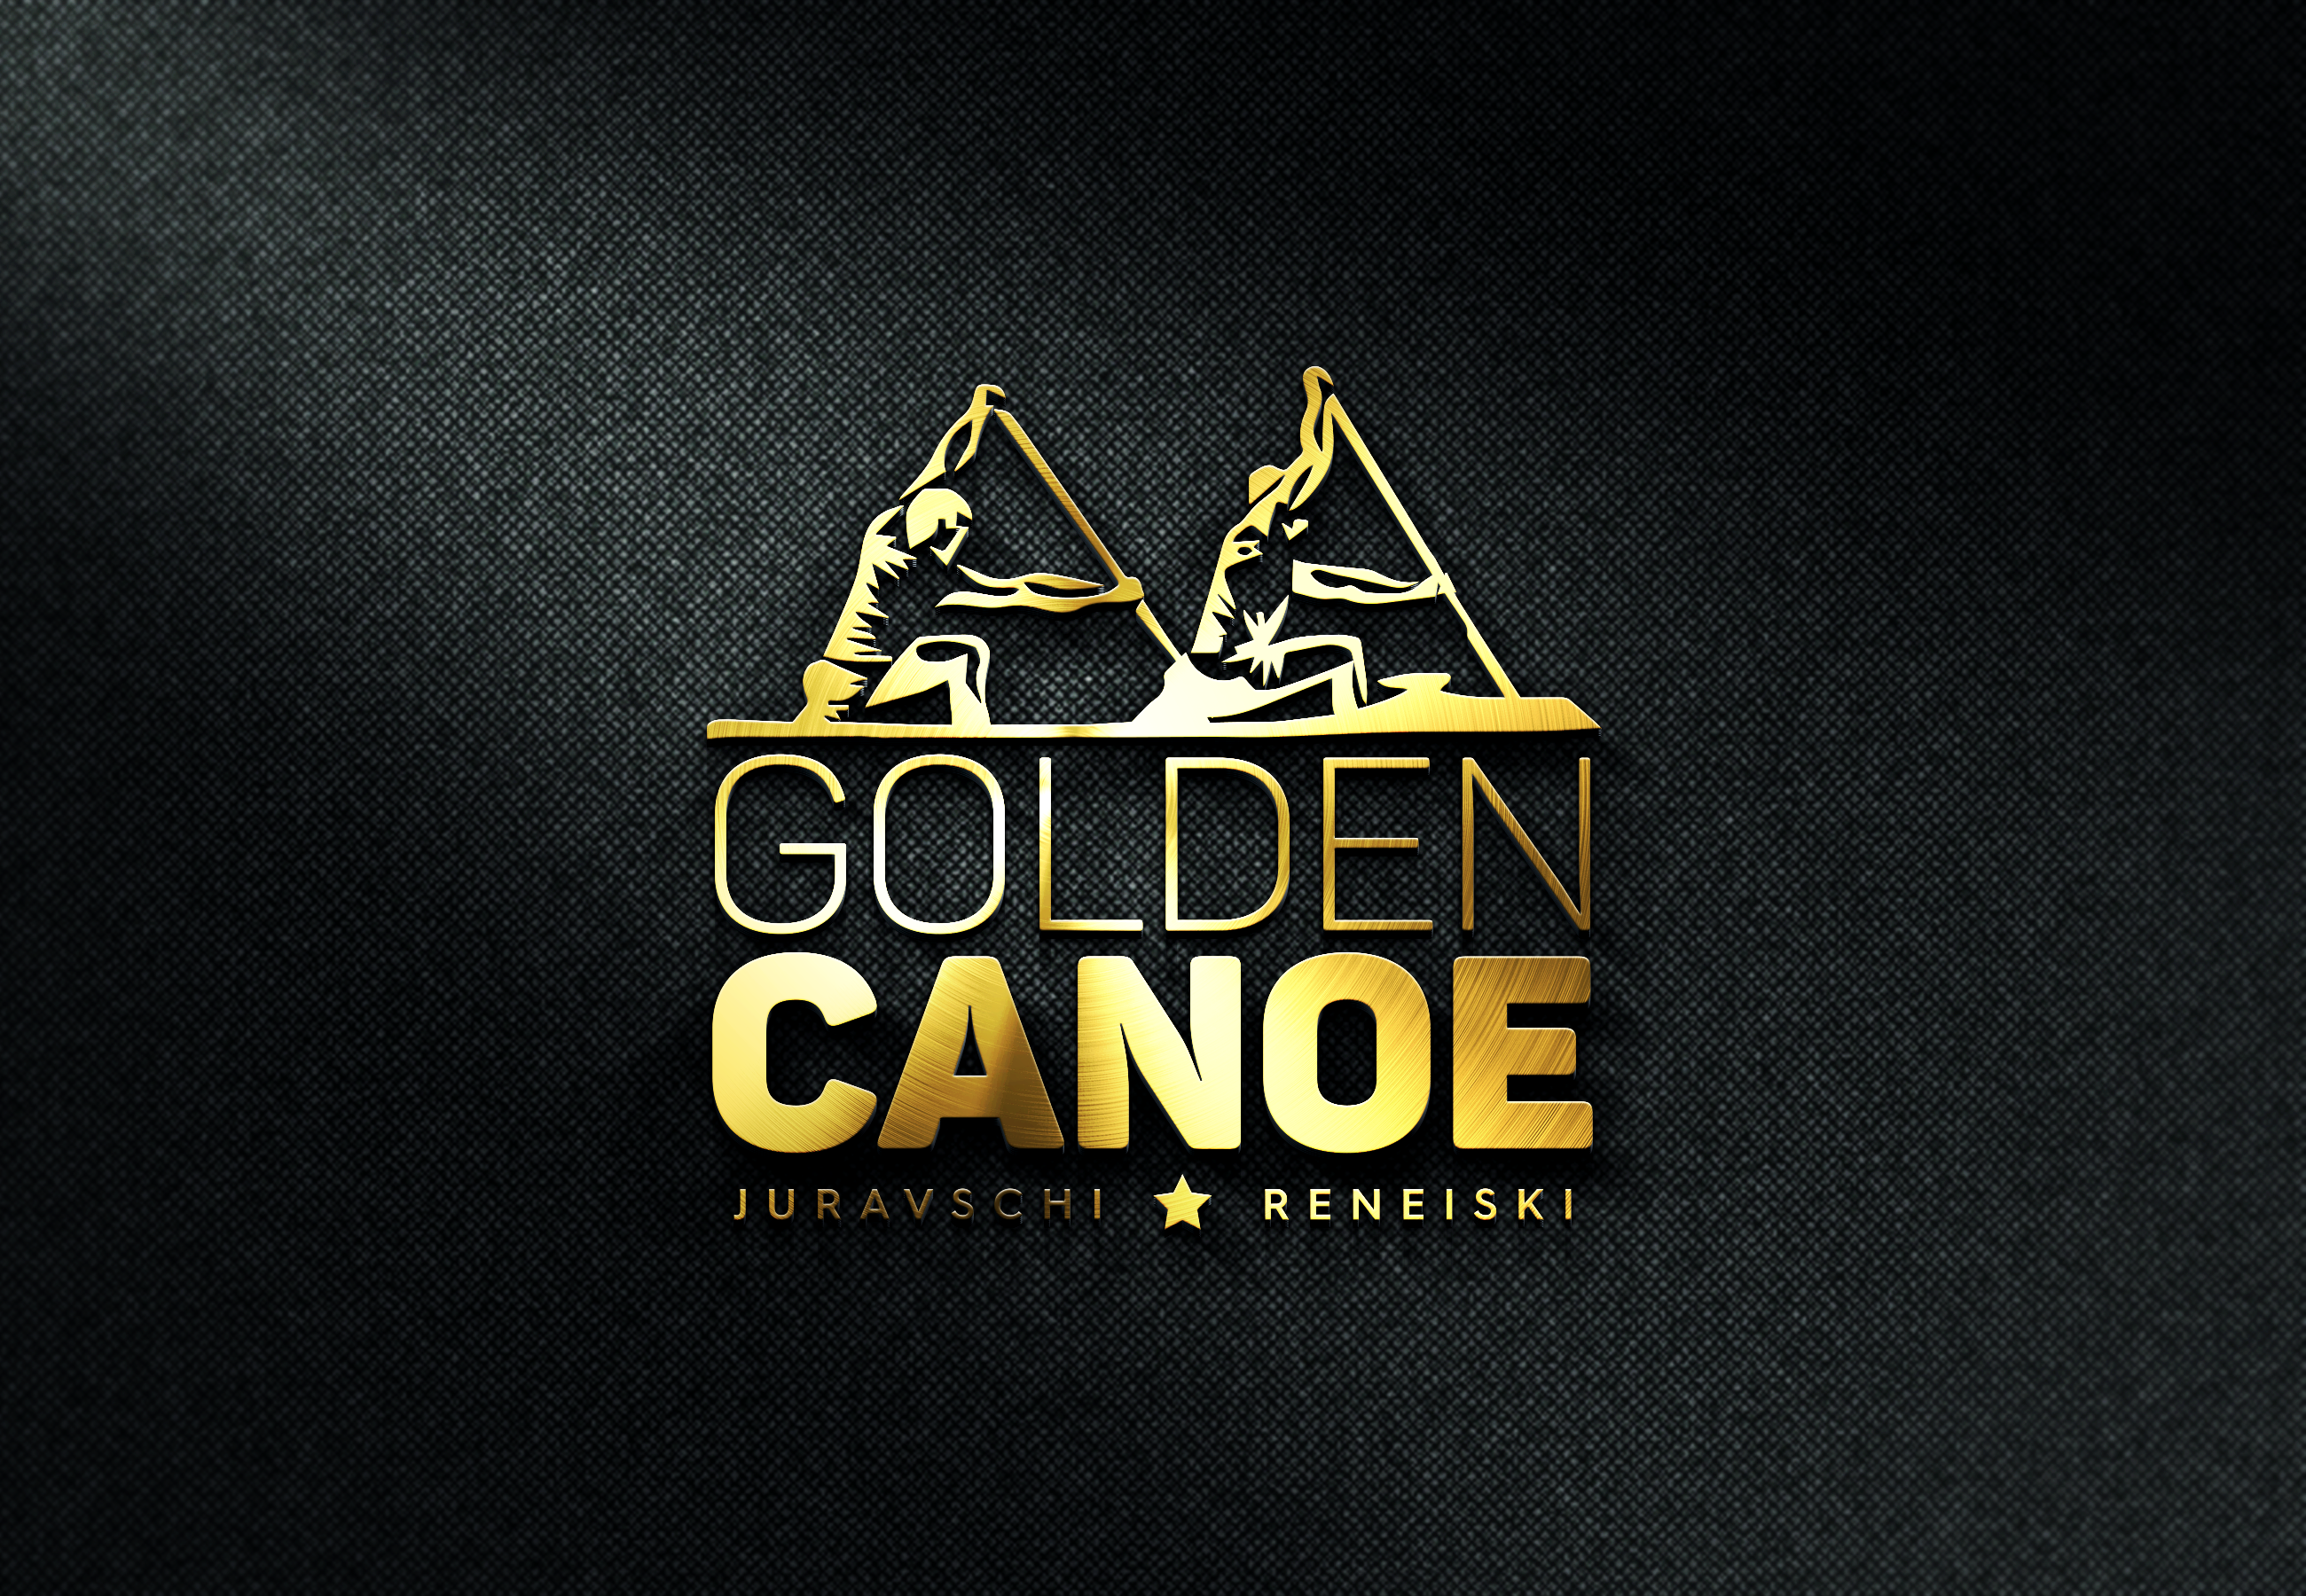 Regulament: GOLDEN CANOE Juravschi-Reneiski, 2017